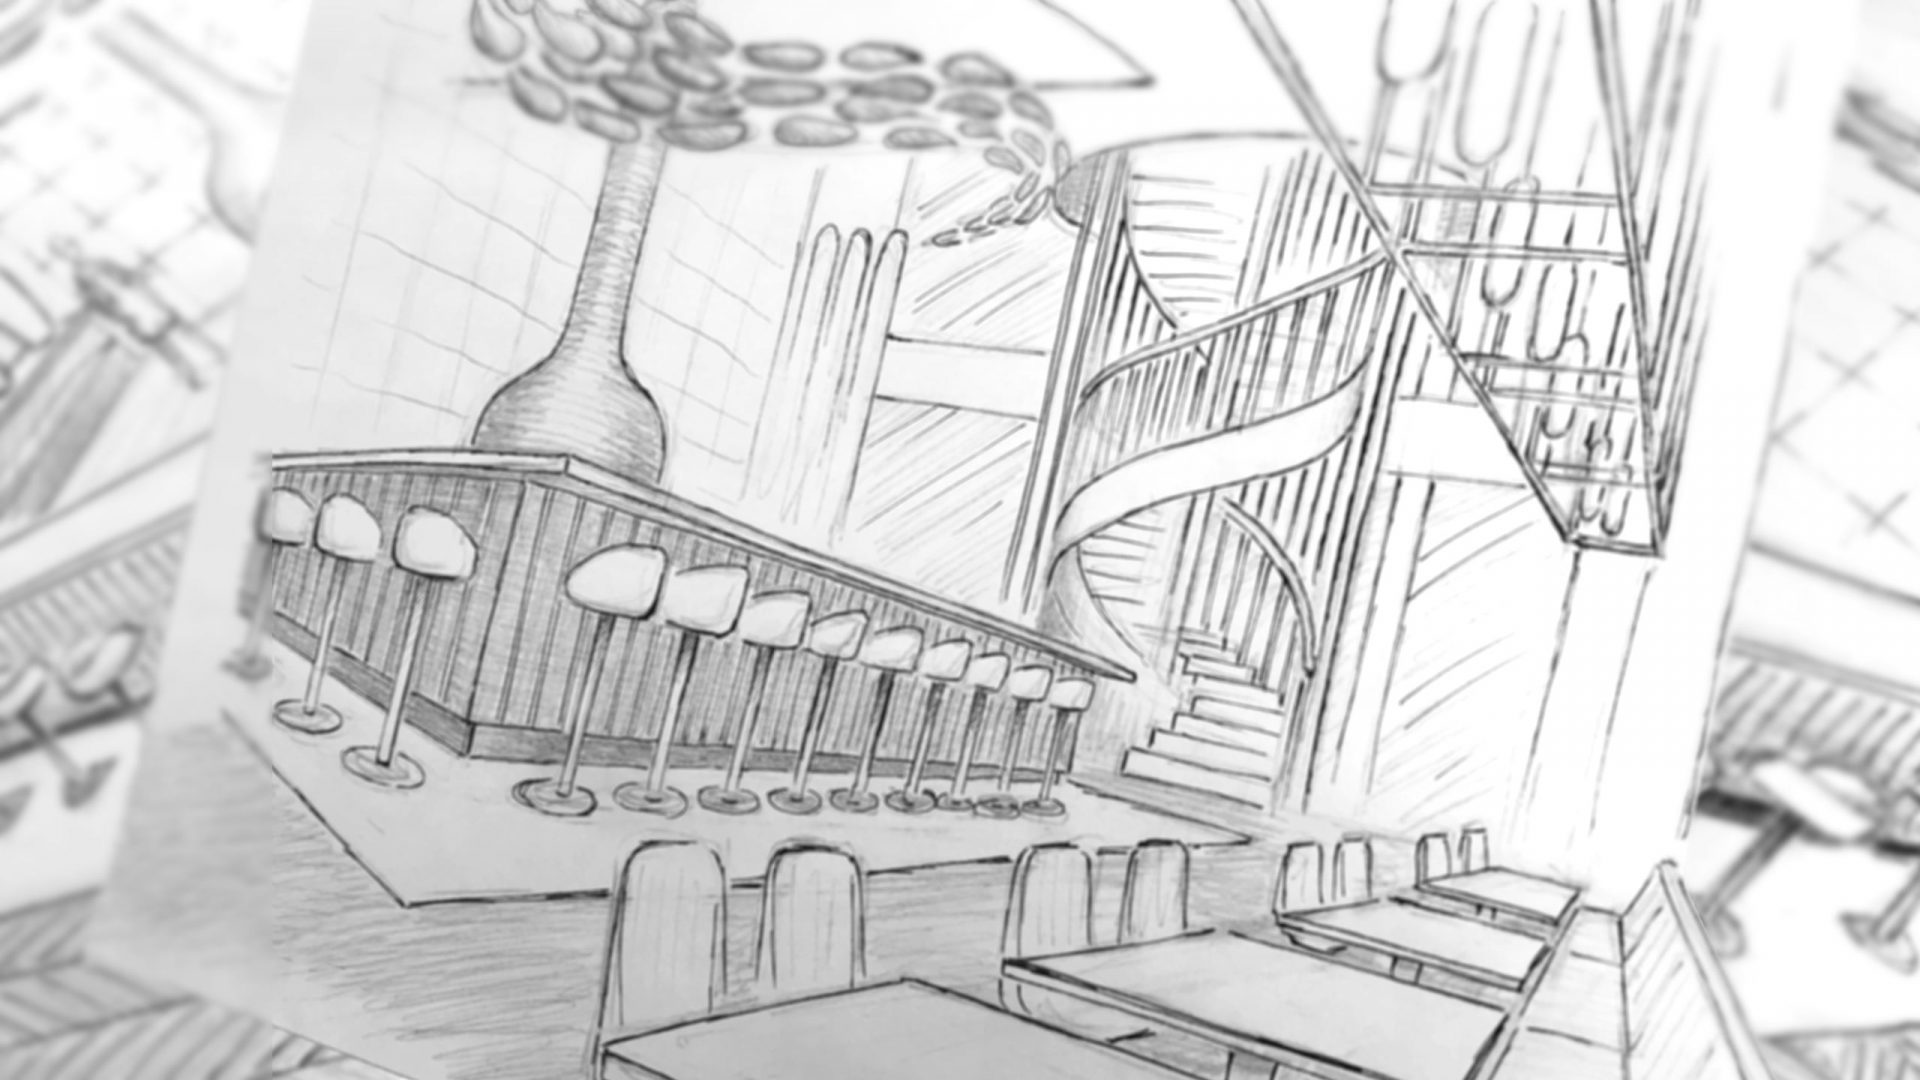 Sketch for a restaurant design by Liqui showing seating and custom counter.